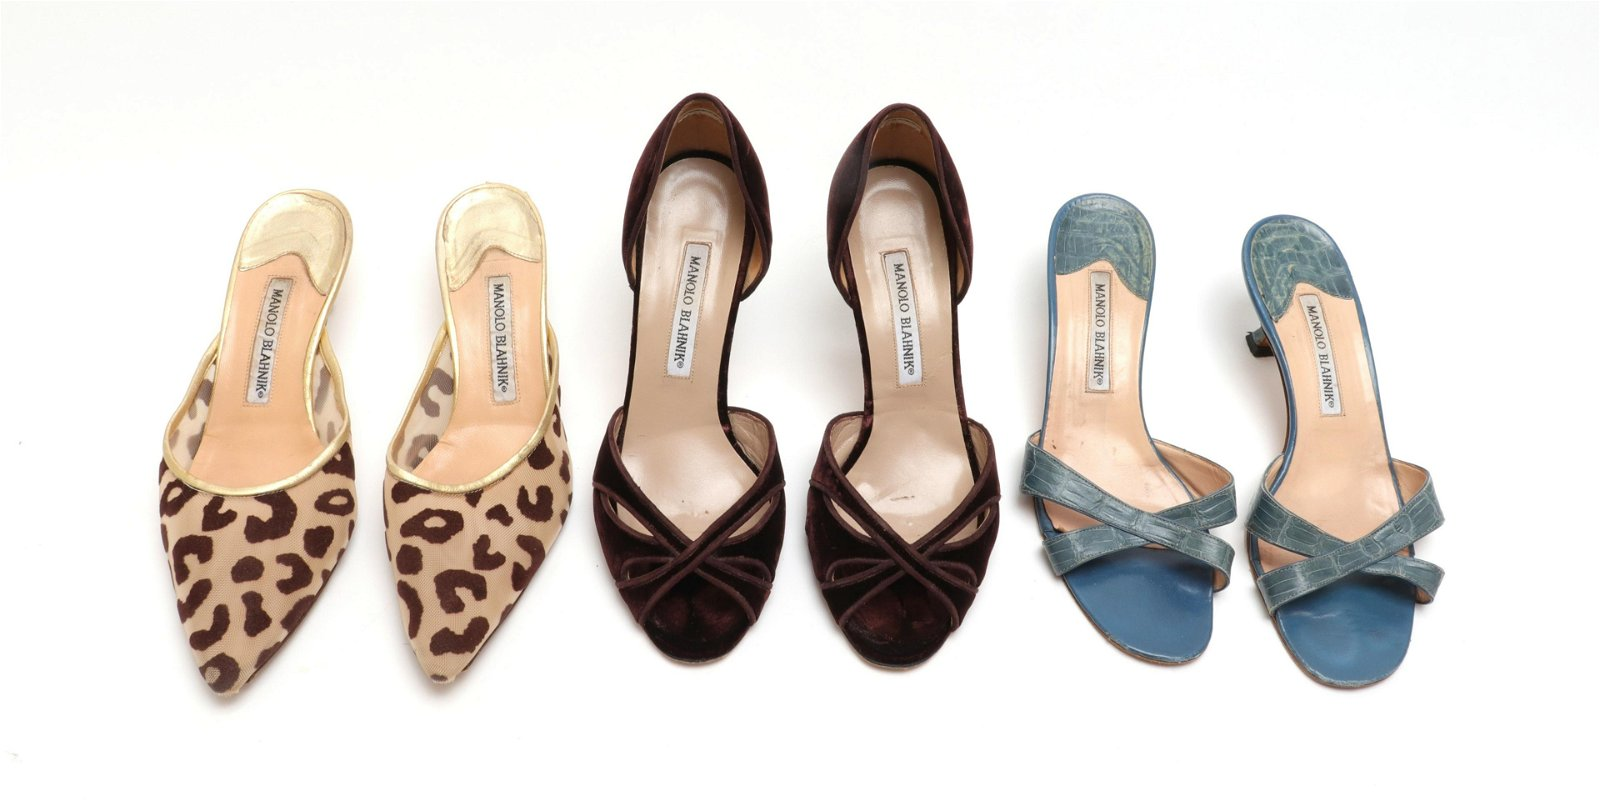 Manolo Blahnik Assorted Shoes, Sizes 37 & 38, 3 Pr